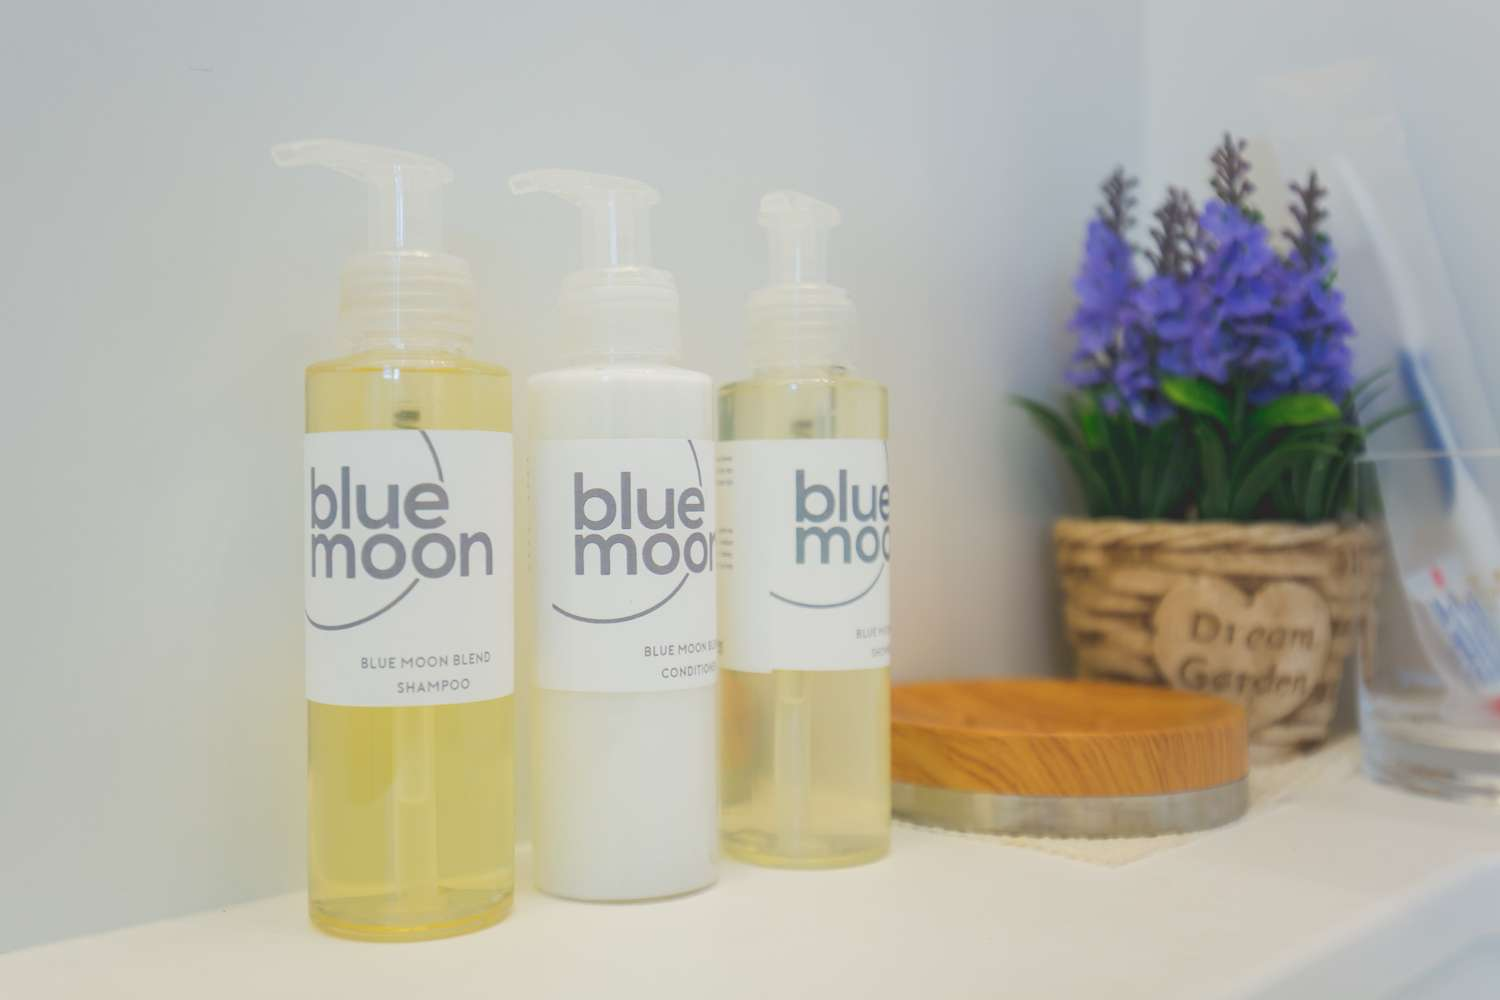 Tailor-made toiletries